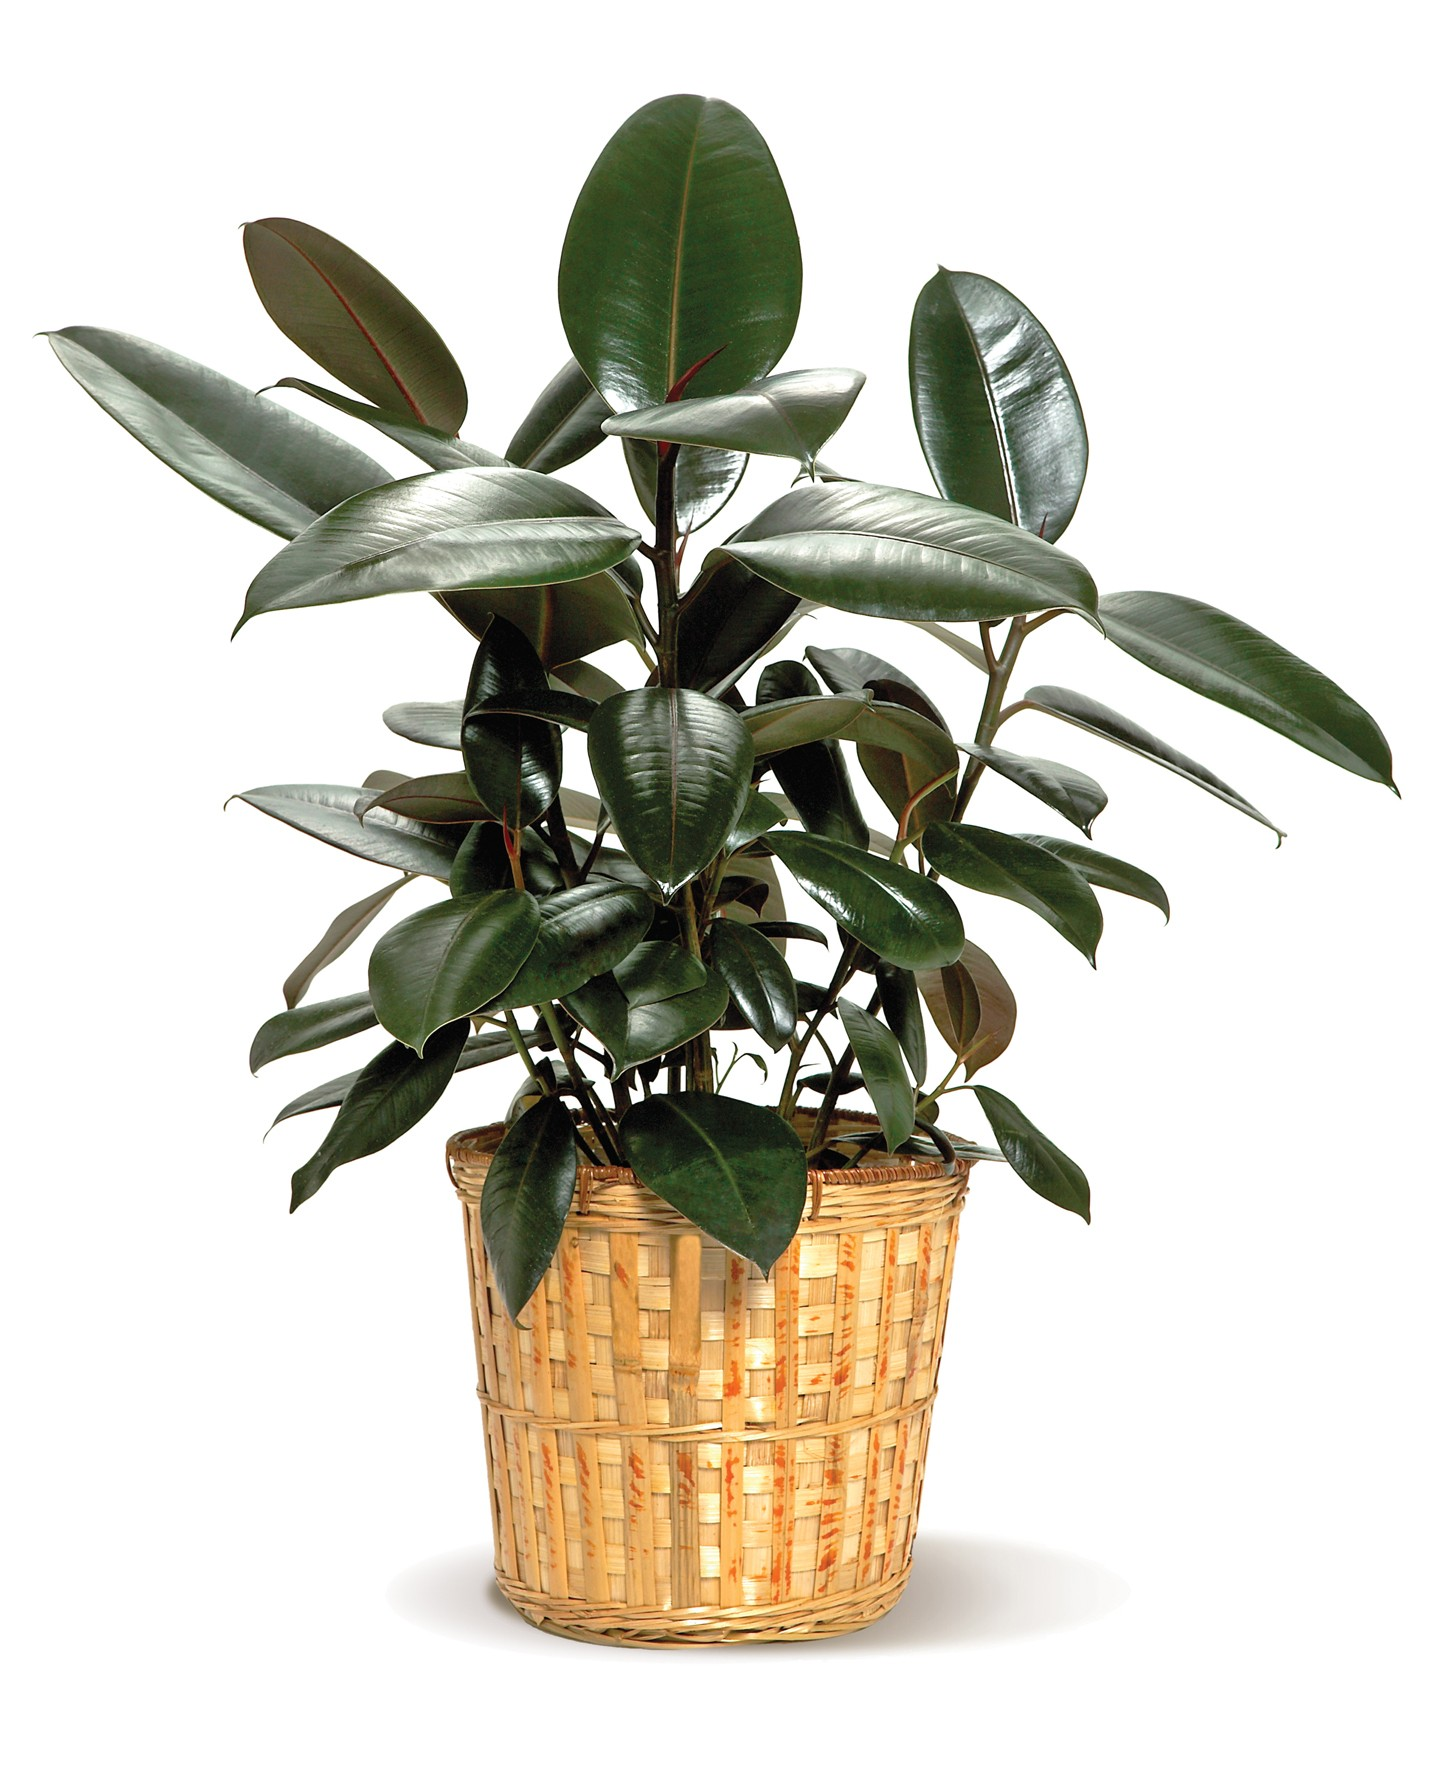 Their leaves are typically broad, deep green and shiny. However, some  varieties exhibit